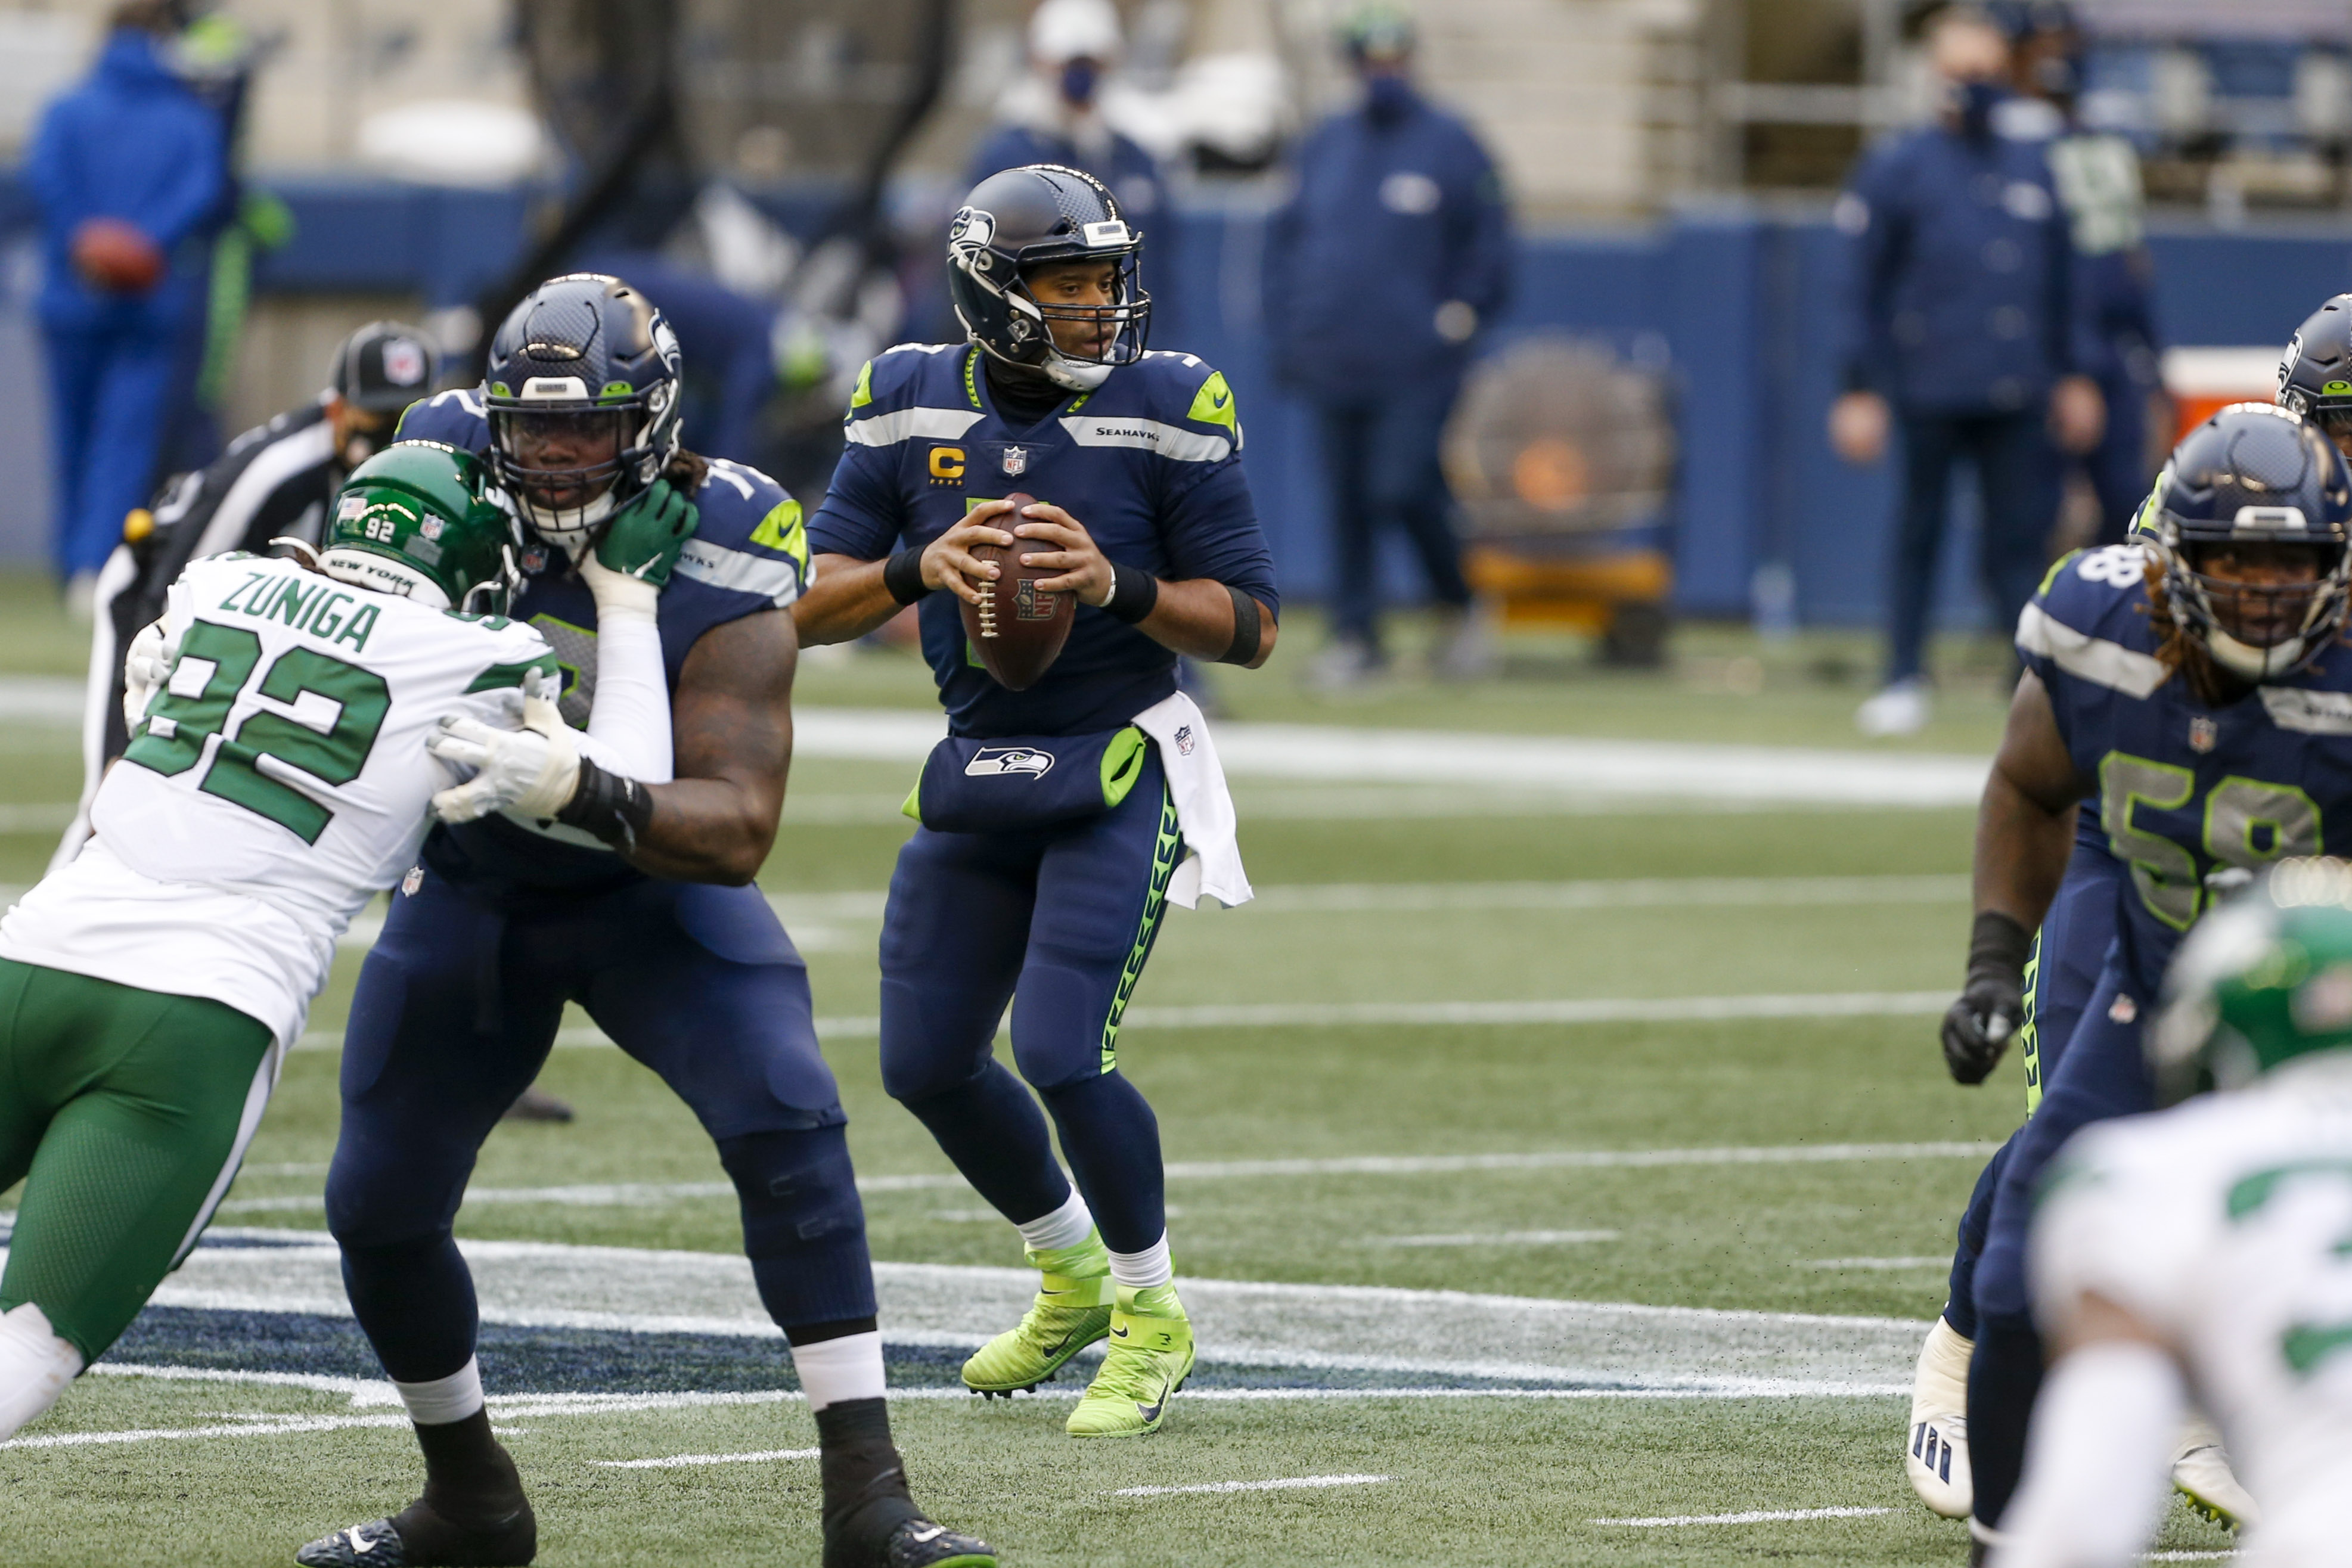 Report: Jets among teams linked to Russell Wilson-Seahawks trade rumors